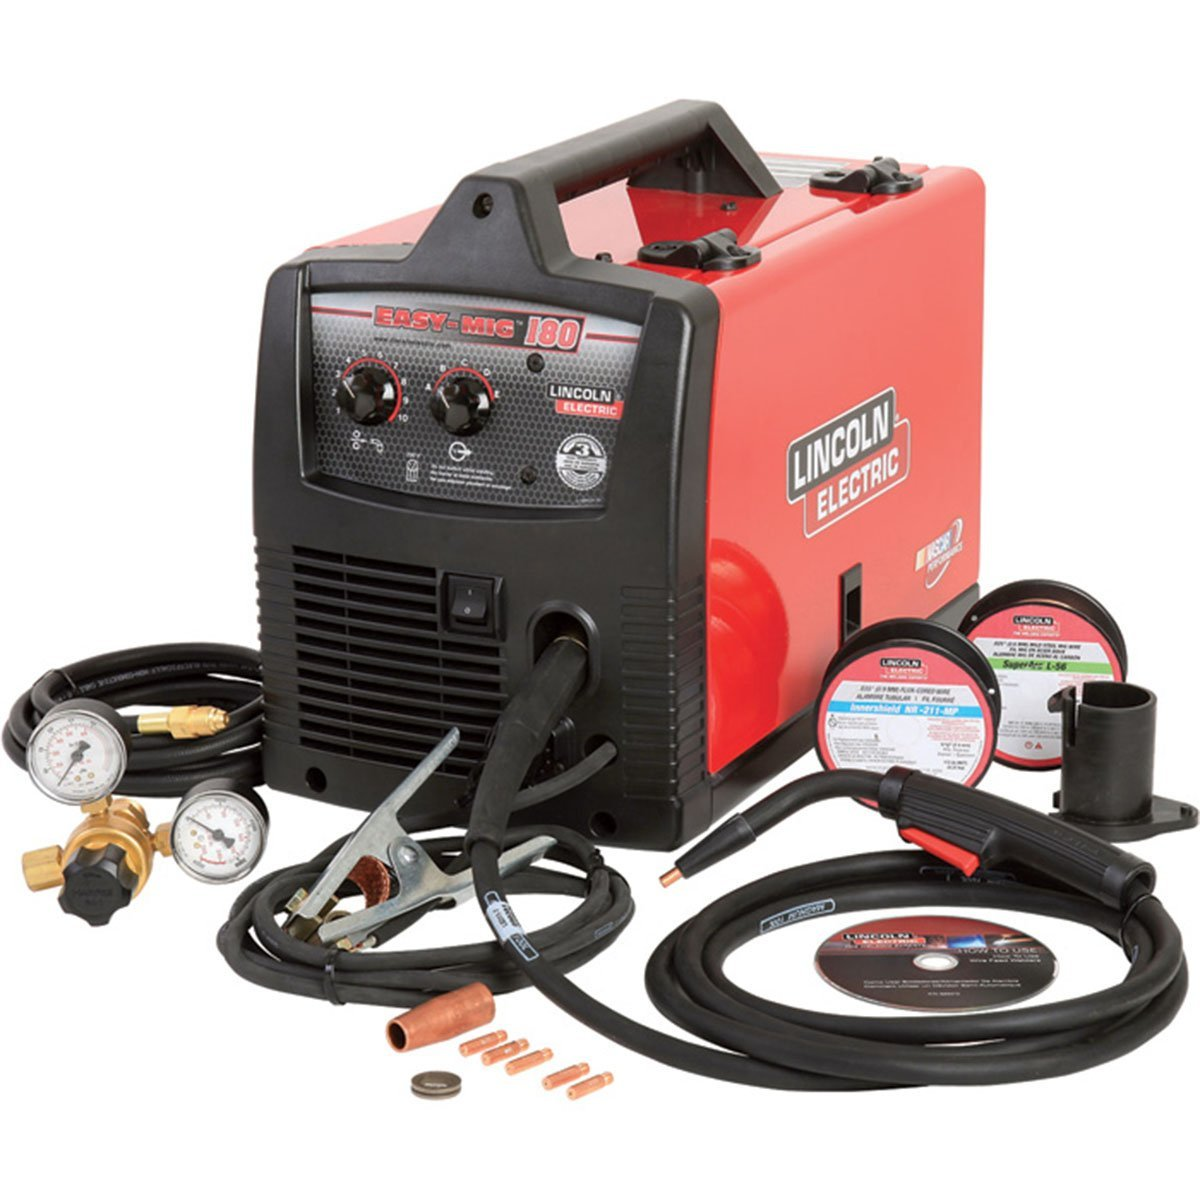 Lincoln Electric Easy MIG 180 Flux-Core/MIG Welder